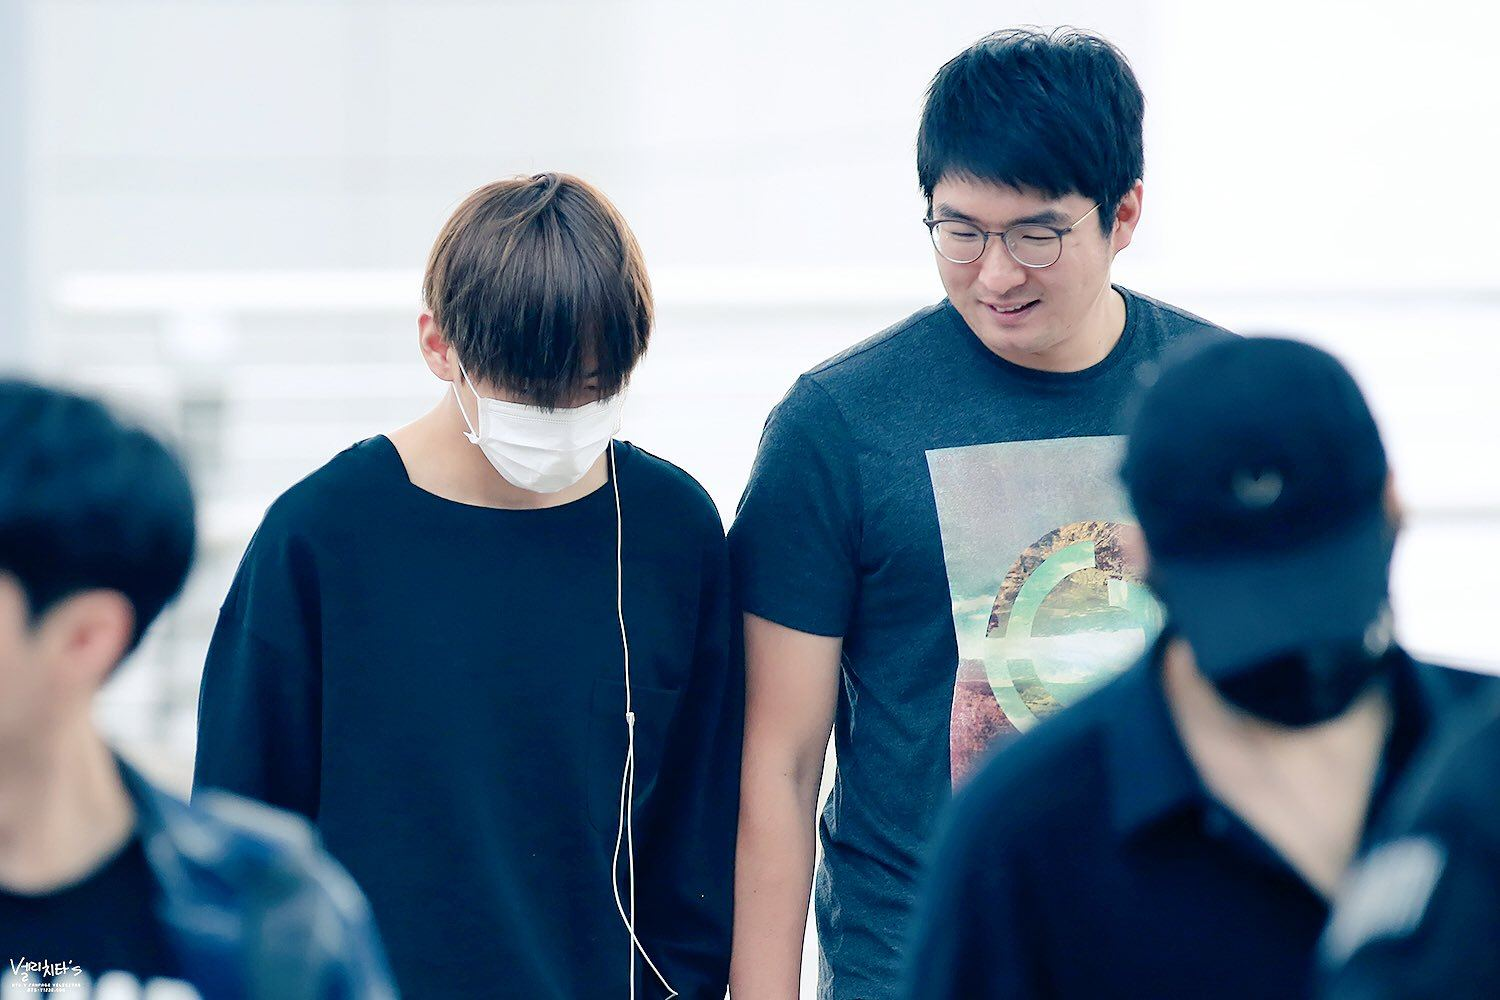 Photos show BTS V's close relationship with their managers